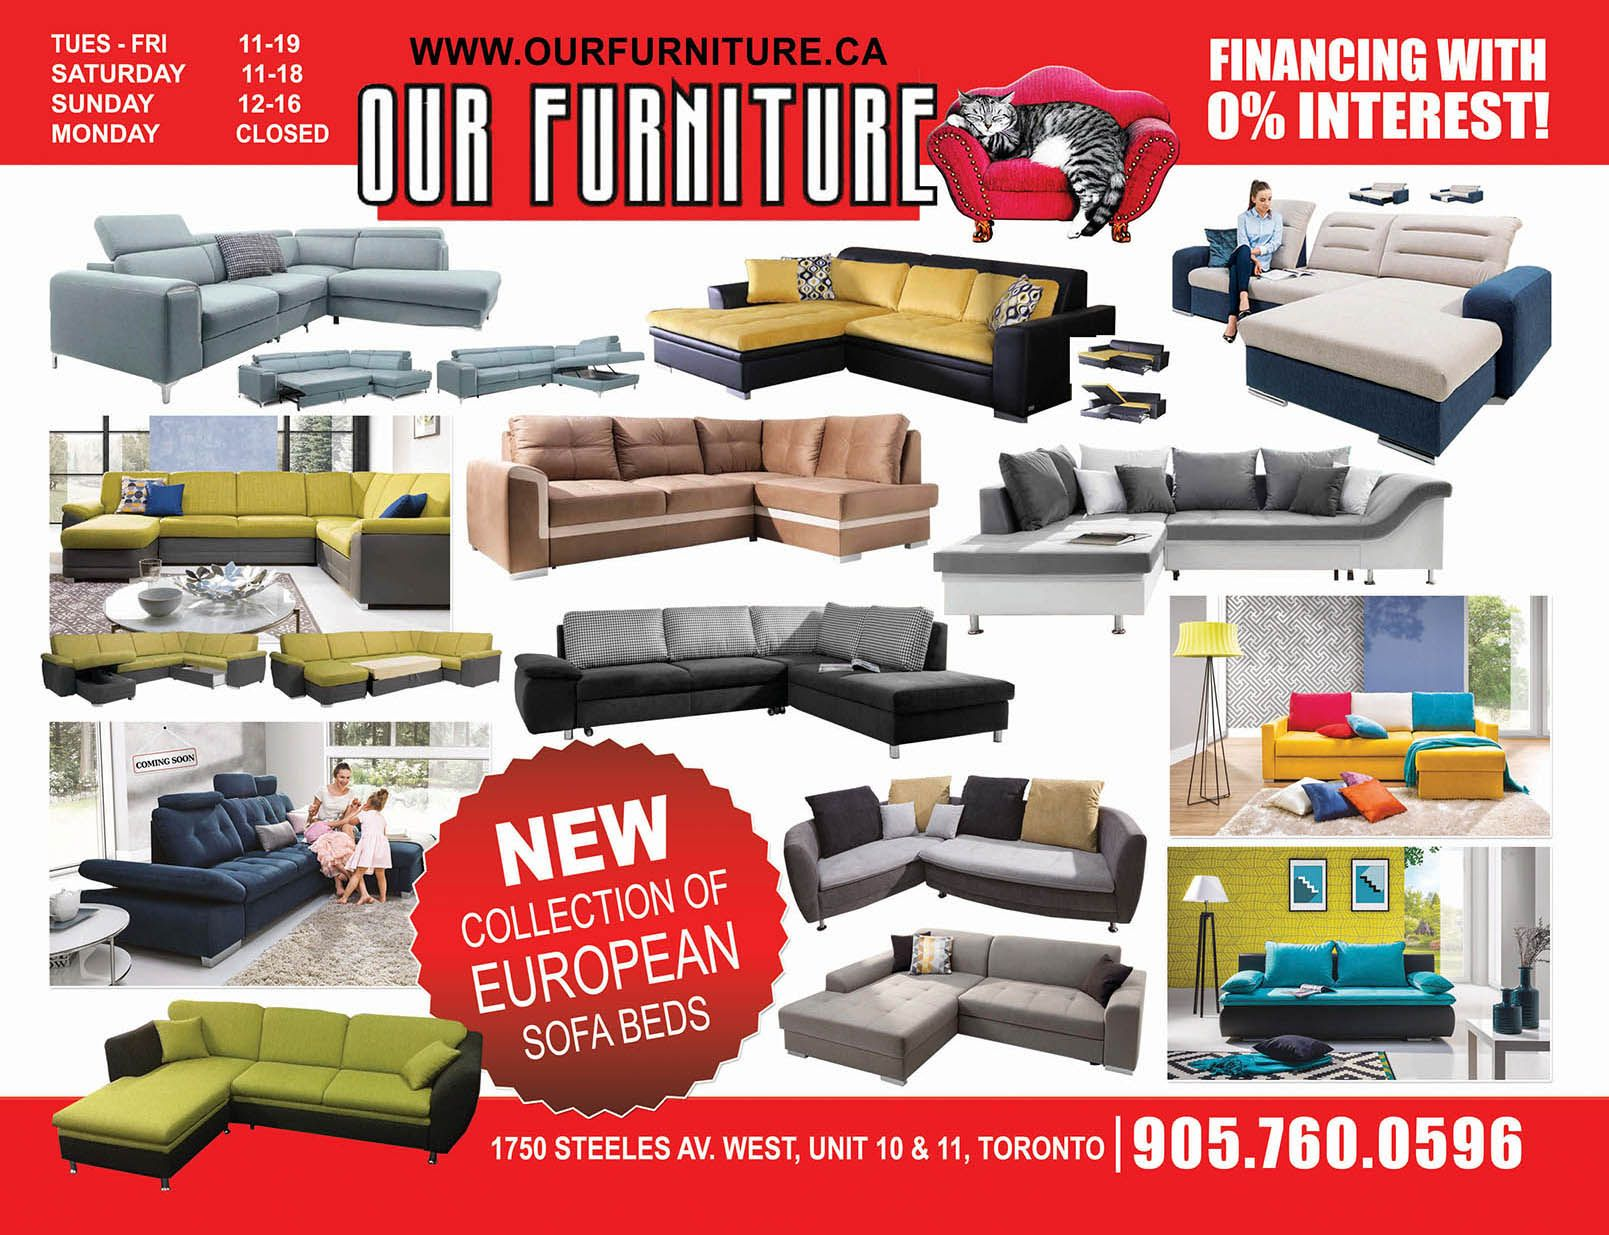 Our Store Has A Unique Selection Of Modern Chairs Sofas And Europeen Sofa Beds Tables End Tables Dressers Etc Discount Furniture Stores Small Bedroom Furniture Furniture